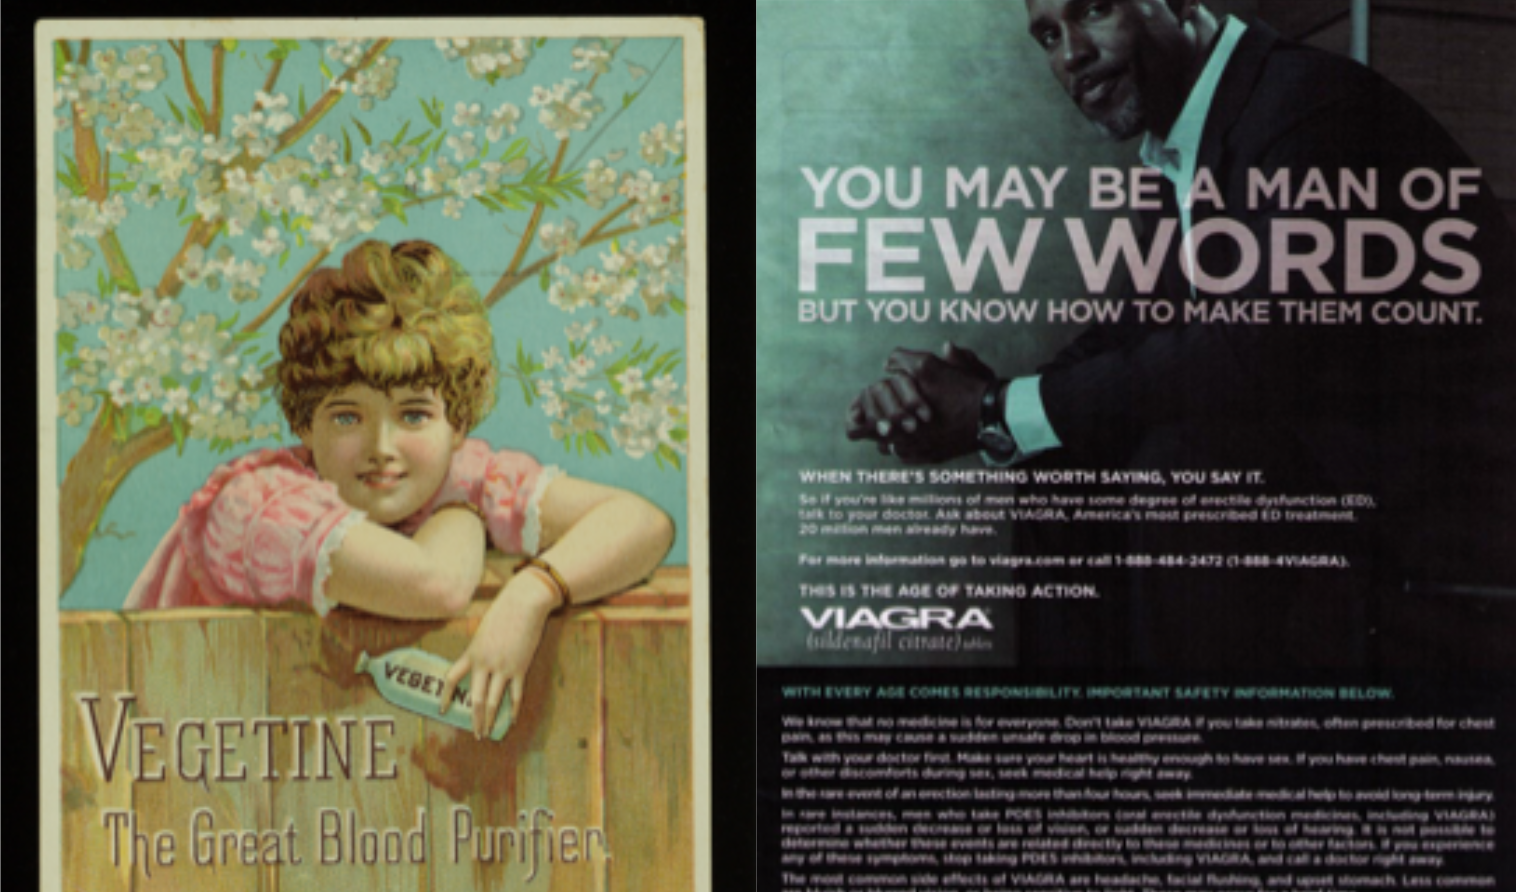 Drug Ads from Past and Present